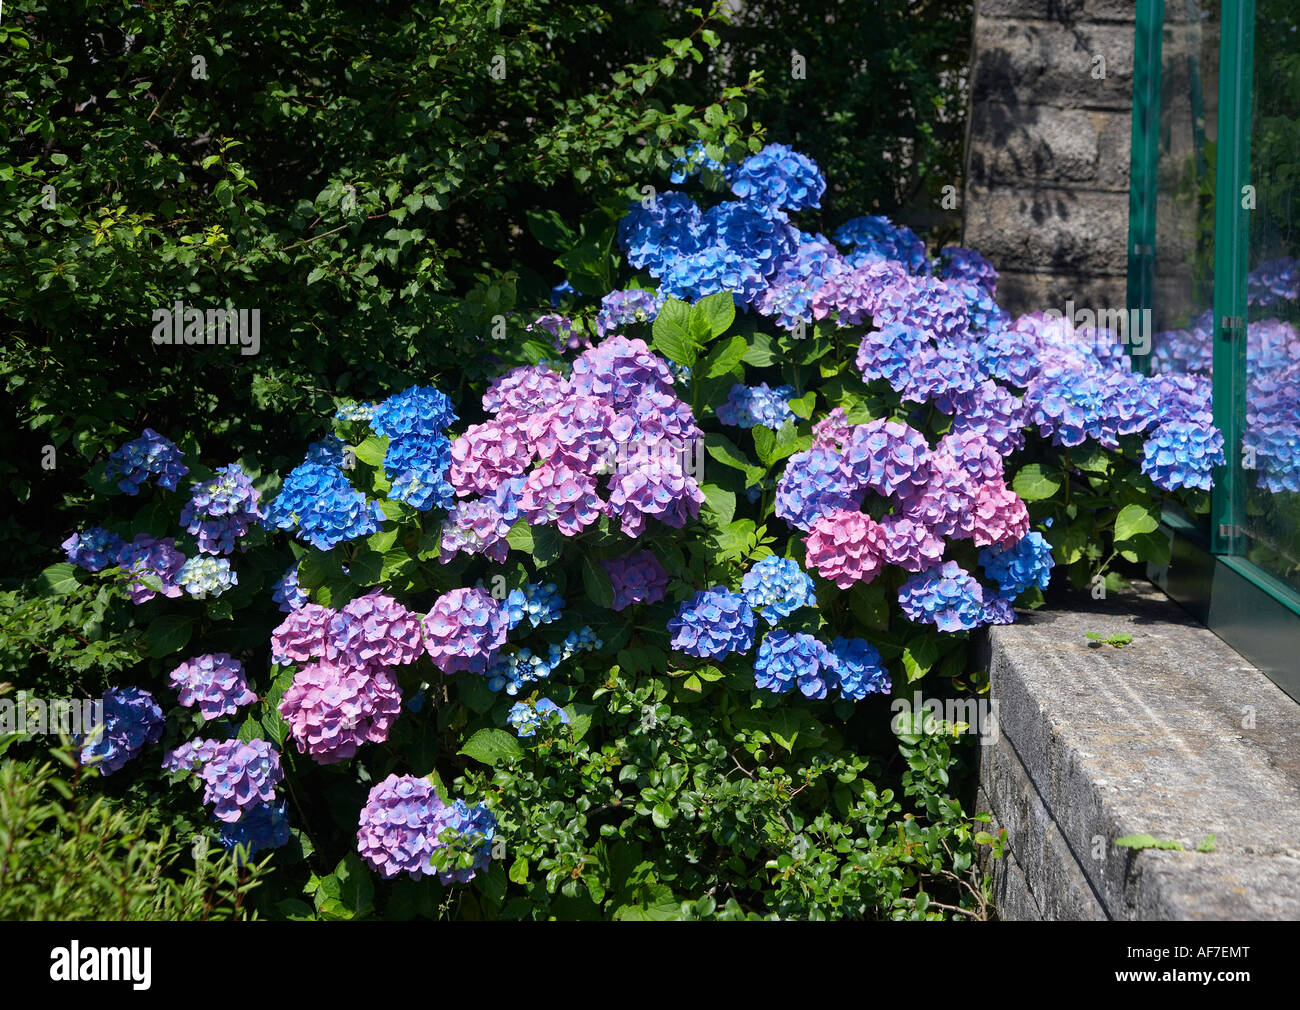 Hydrangea, Blue and Pink - Stock Image